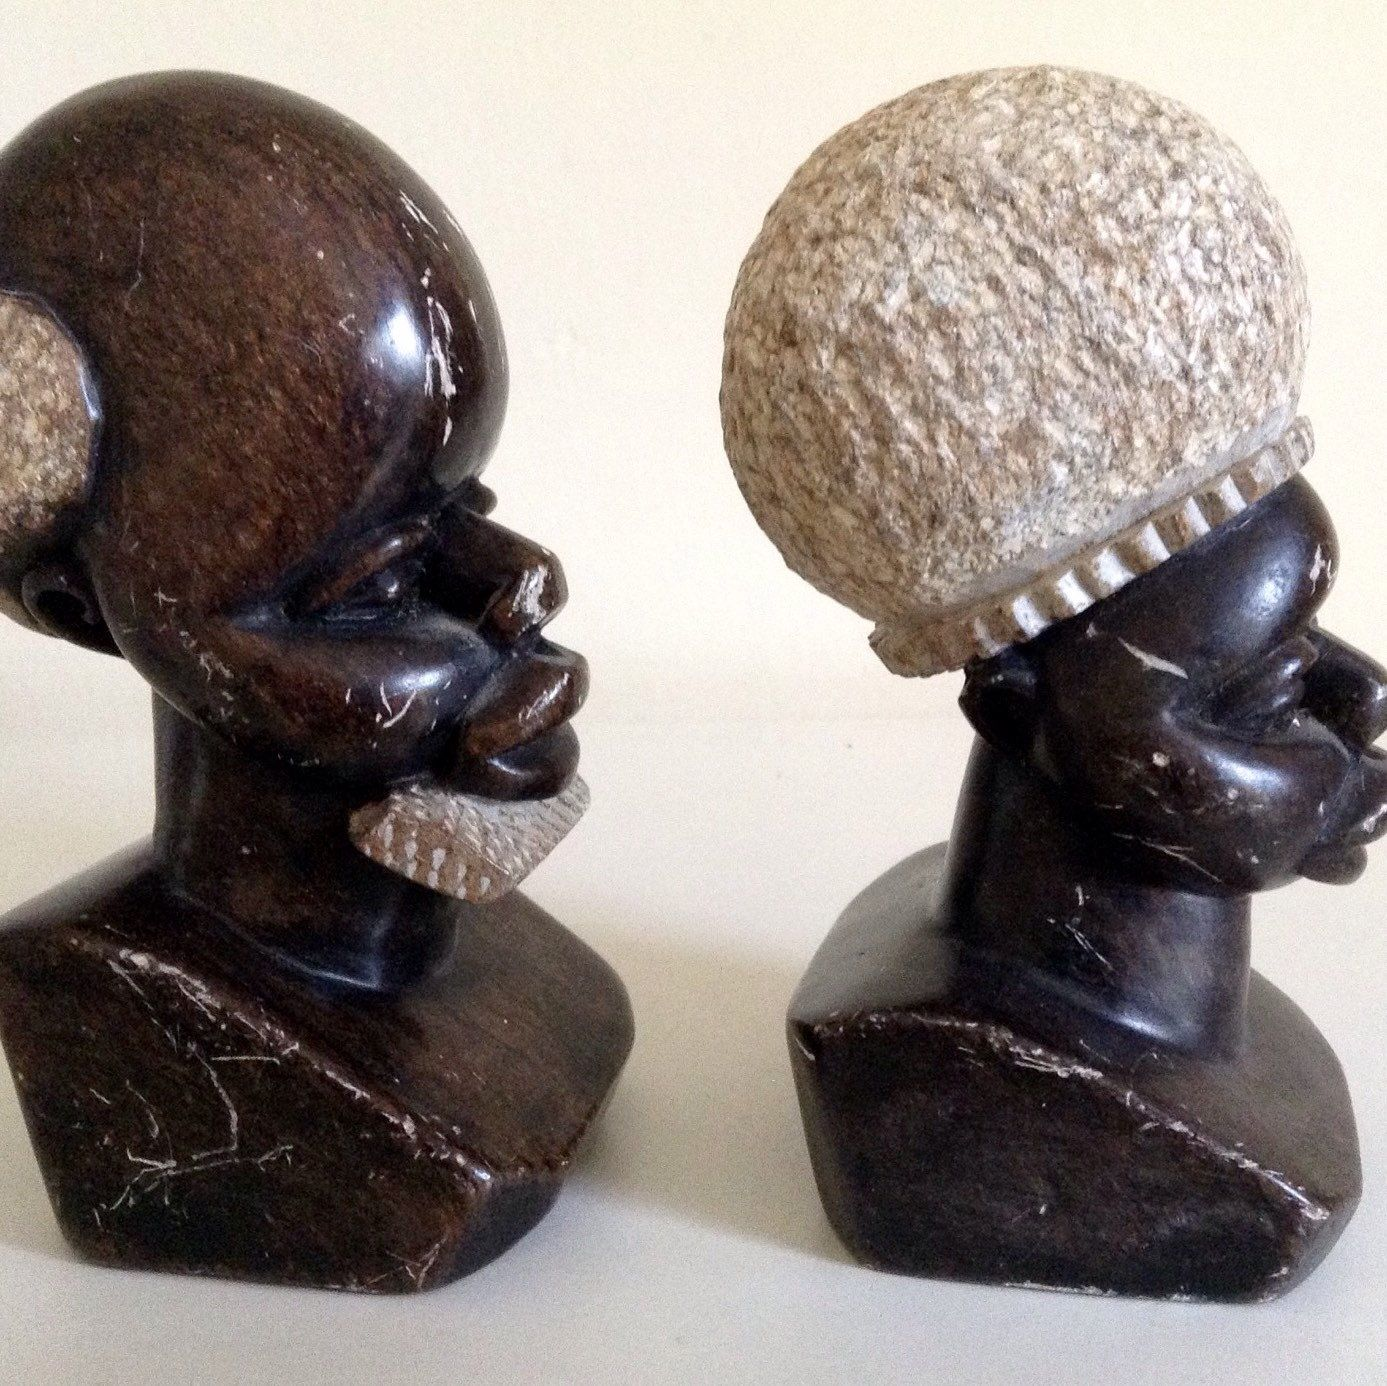 Ethnic stone carving from swaziland in africa have bee